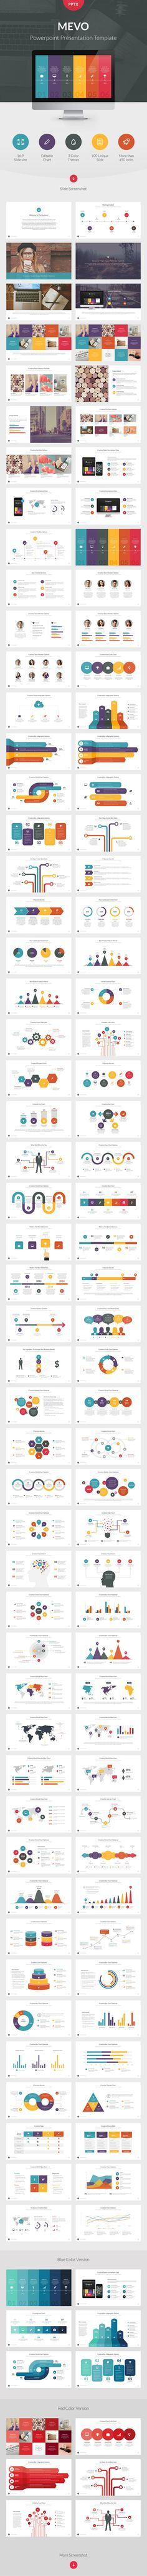 Buy Mevo Powerpoint Presentation Template by vuuuds on GraphicRiver. Mevo Powerpoint Presentation Template for you that you need professional, clean, creative, simple presentation templ. Keynote Presentation, Design Presentation, Powerpoint Presentation Templates, Keynote Template, Portfolio Presentation, Design Sites, Interaktives Design, Slide Design, Layout Design